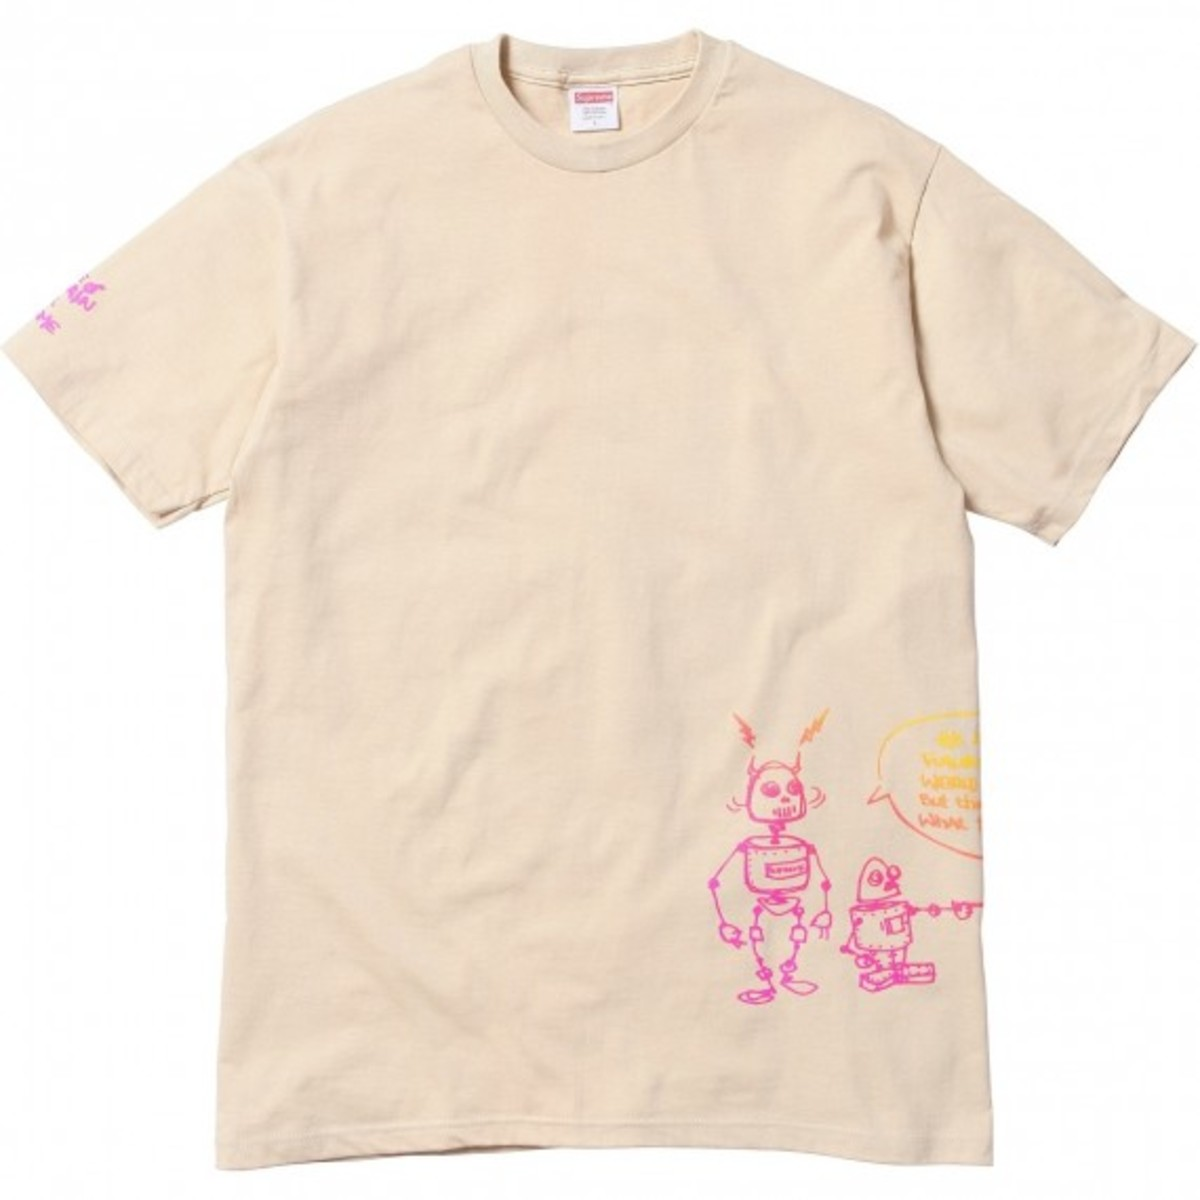 lance-mountain-supreme-robot-tee-03